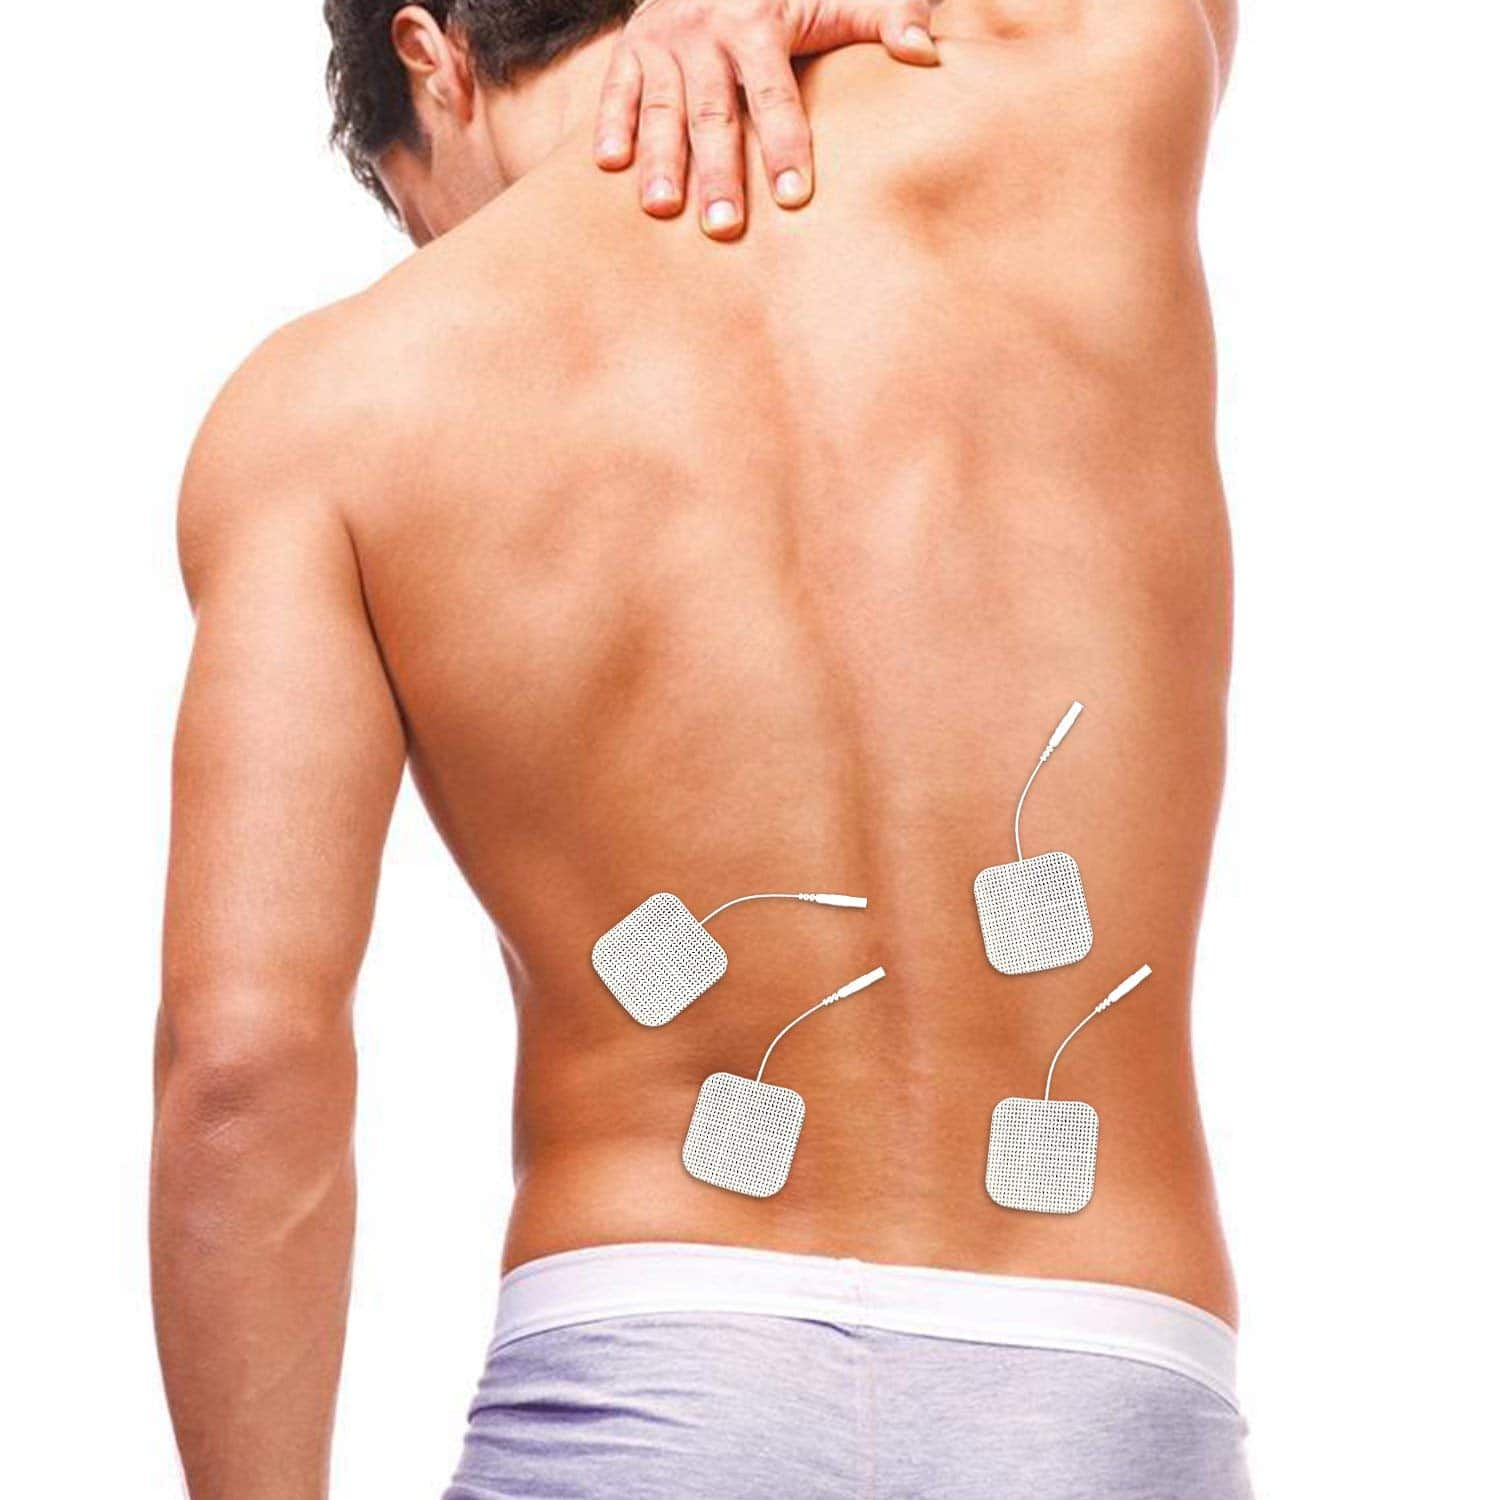 "DONECO 2"" Square TENS Unit Electrodes, 48-Pack Electro Pads for TENS Therapy - Universally Compatible with Most TENS Machine Models - 48-Piece Value Pack - $14.81"